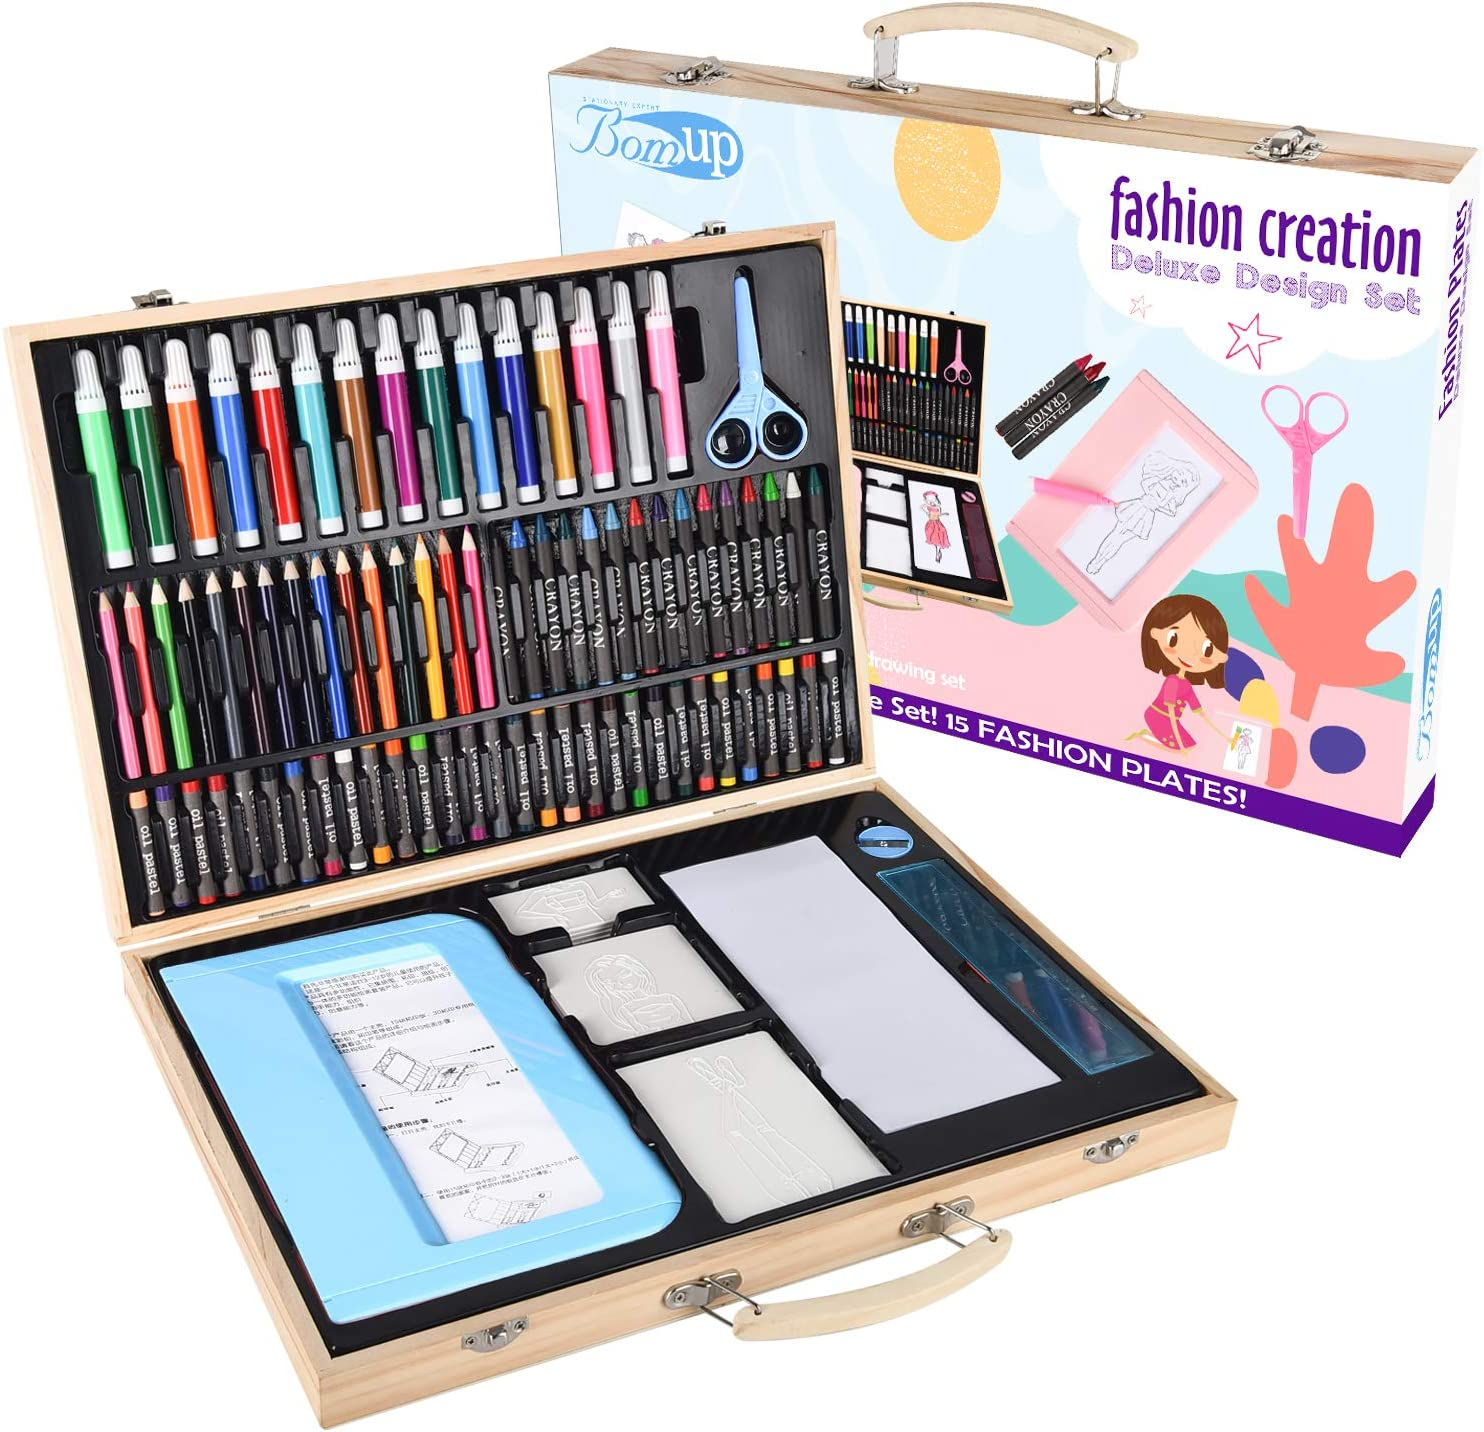 Amazon Com Fashion Plates Designer Kits 129 Piece Deluxe Kit Rubbing Plate Activity Kit Drawing Set In Wooden Case Arts Crafts 15 Double Sided Plates 75 Colored Pencils Rubbing Crayon Gift For Girls Blue